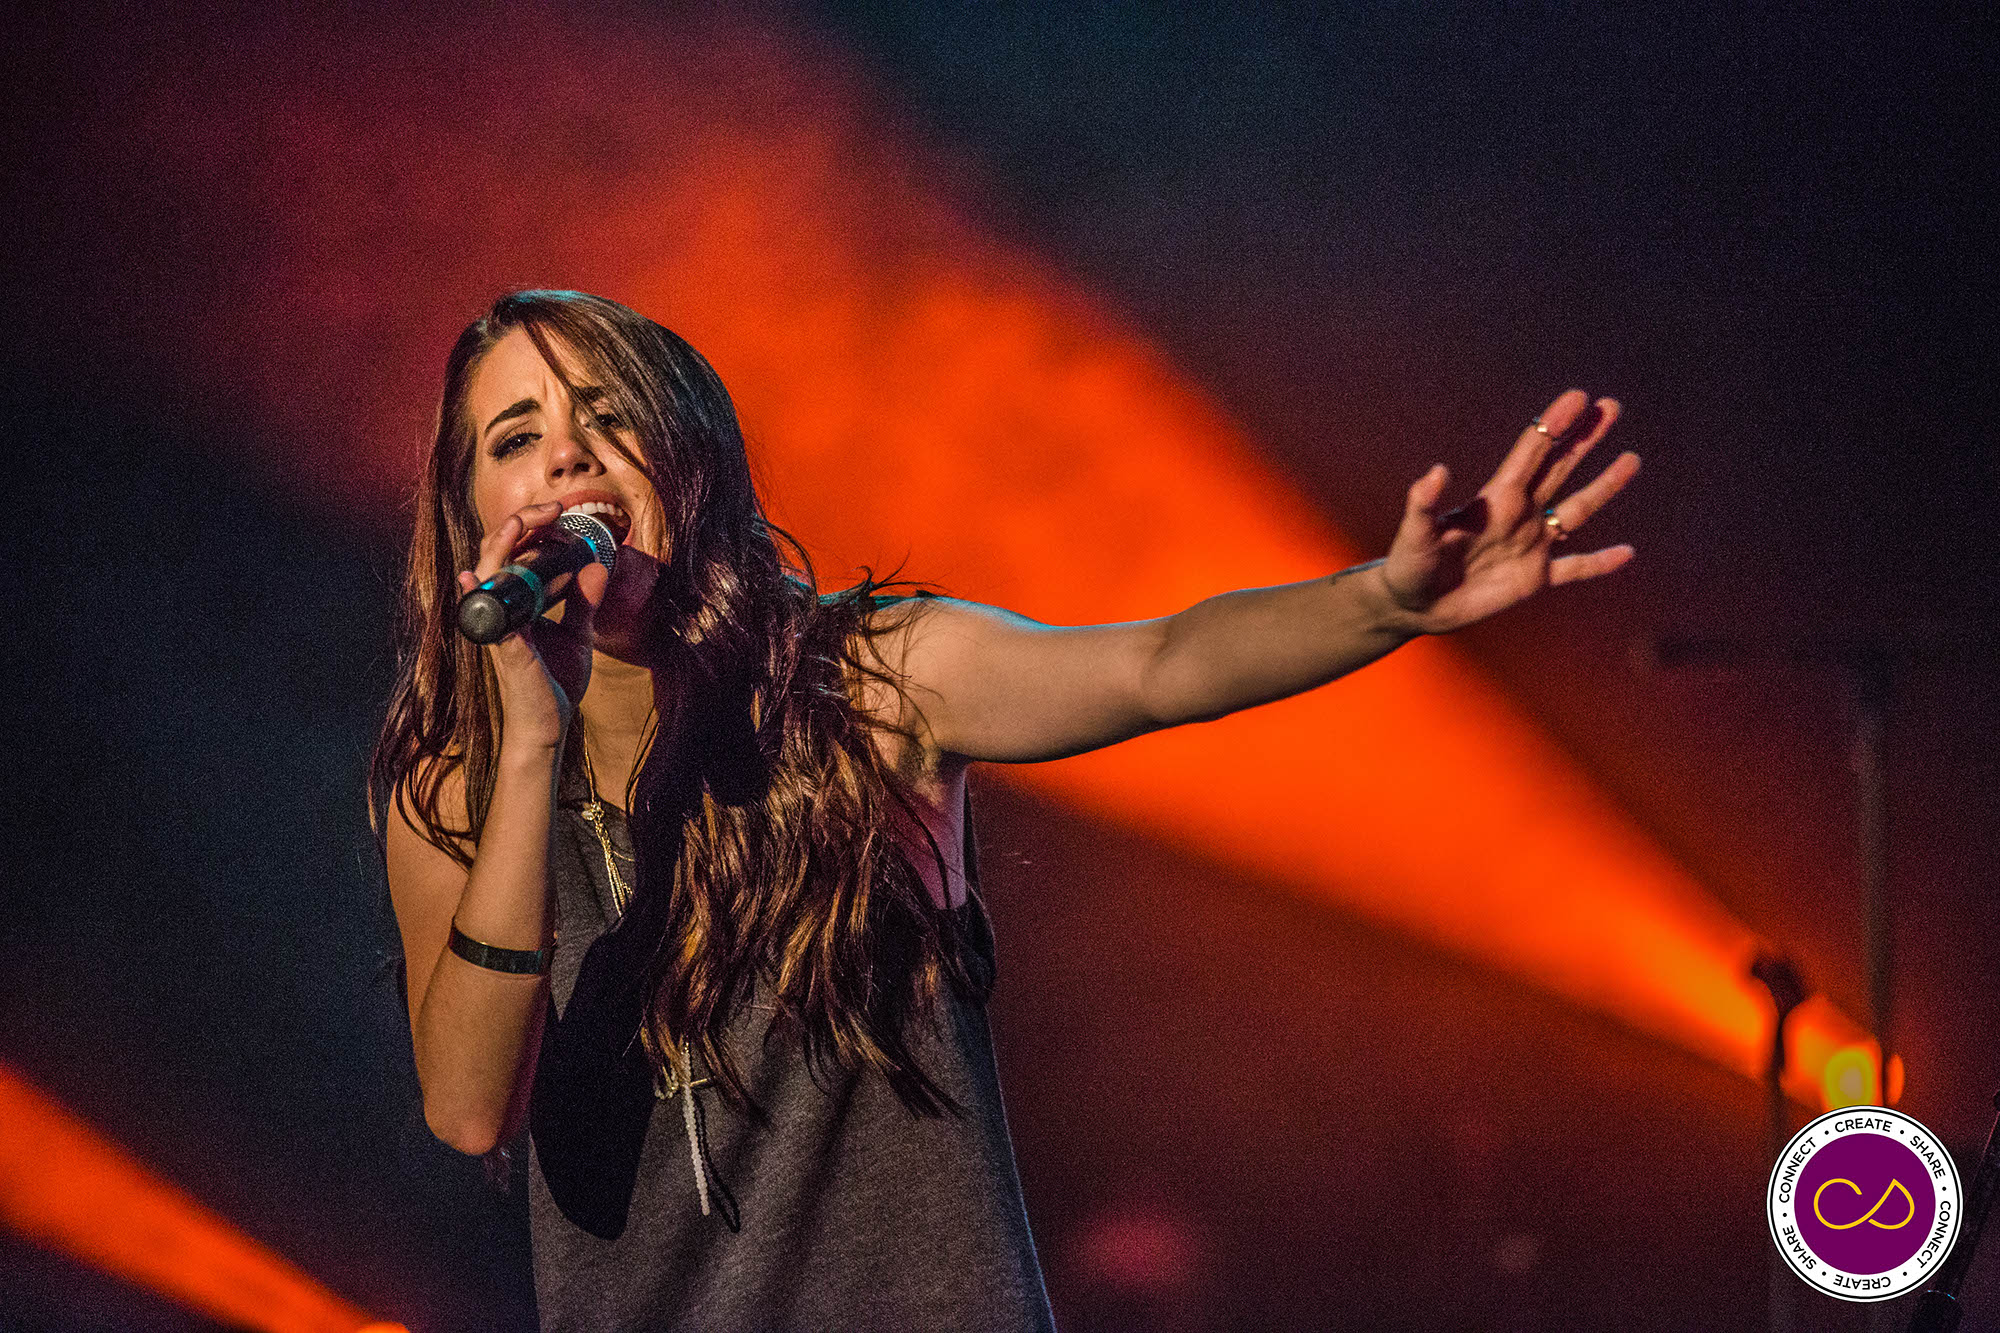 road-trip-angie-miller-performs-at-the-cabot-beverly-ma_17825321150_o.jpg